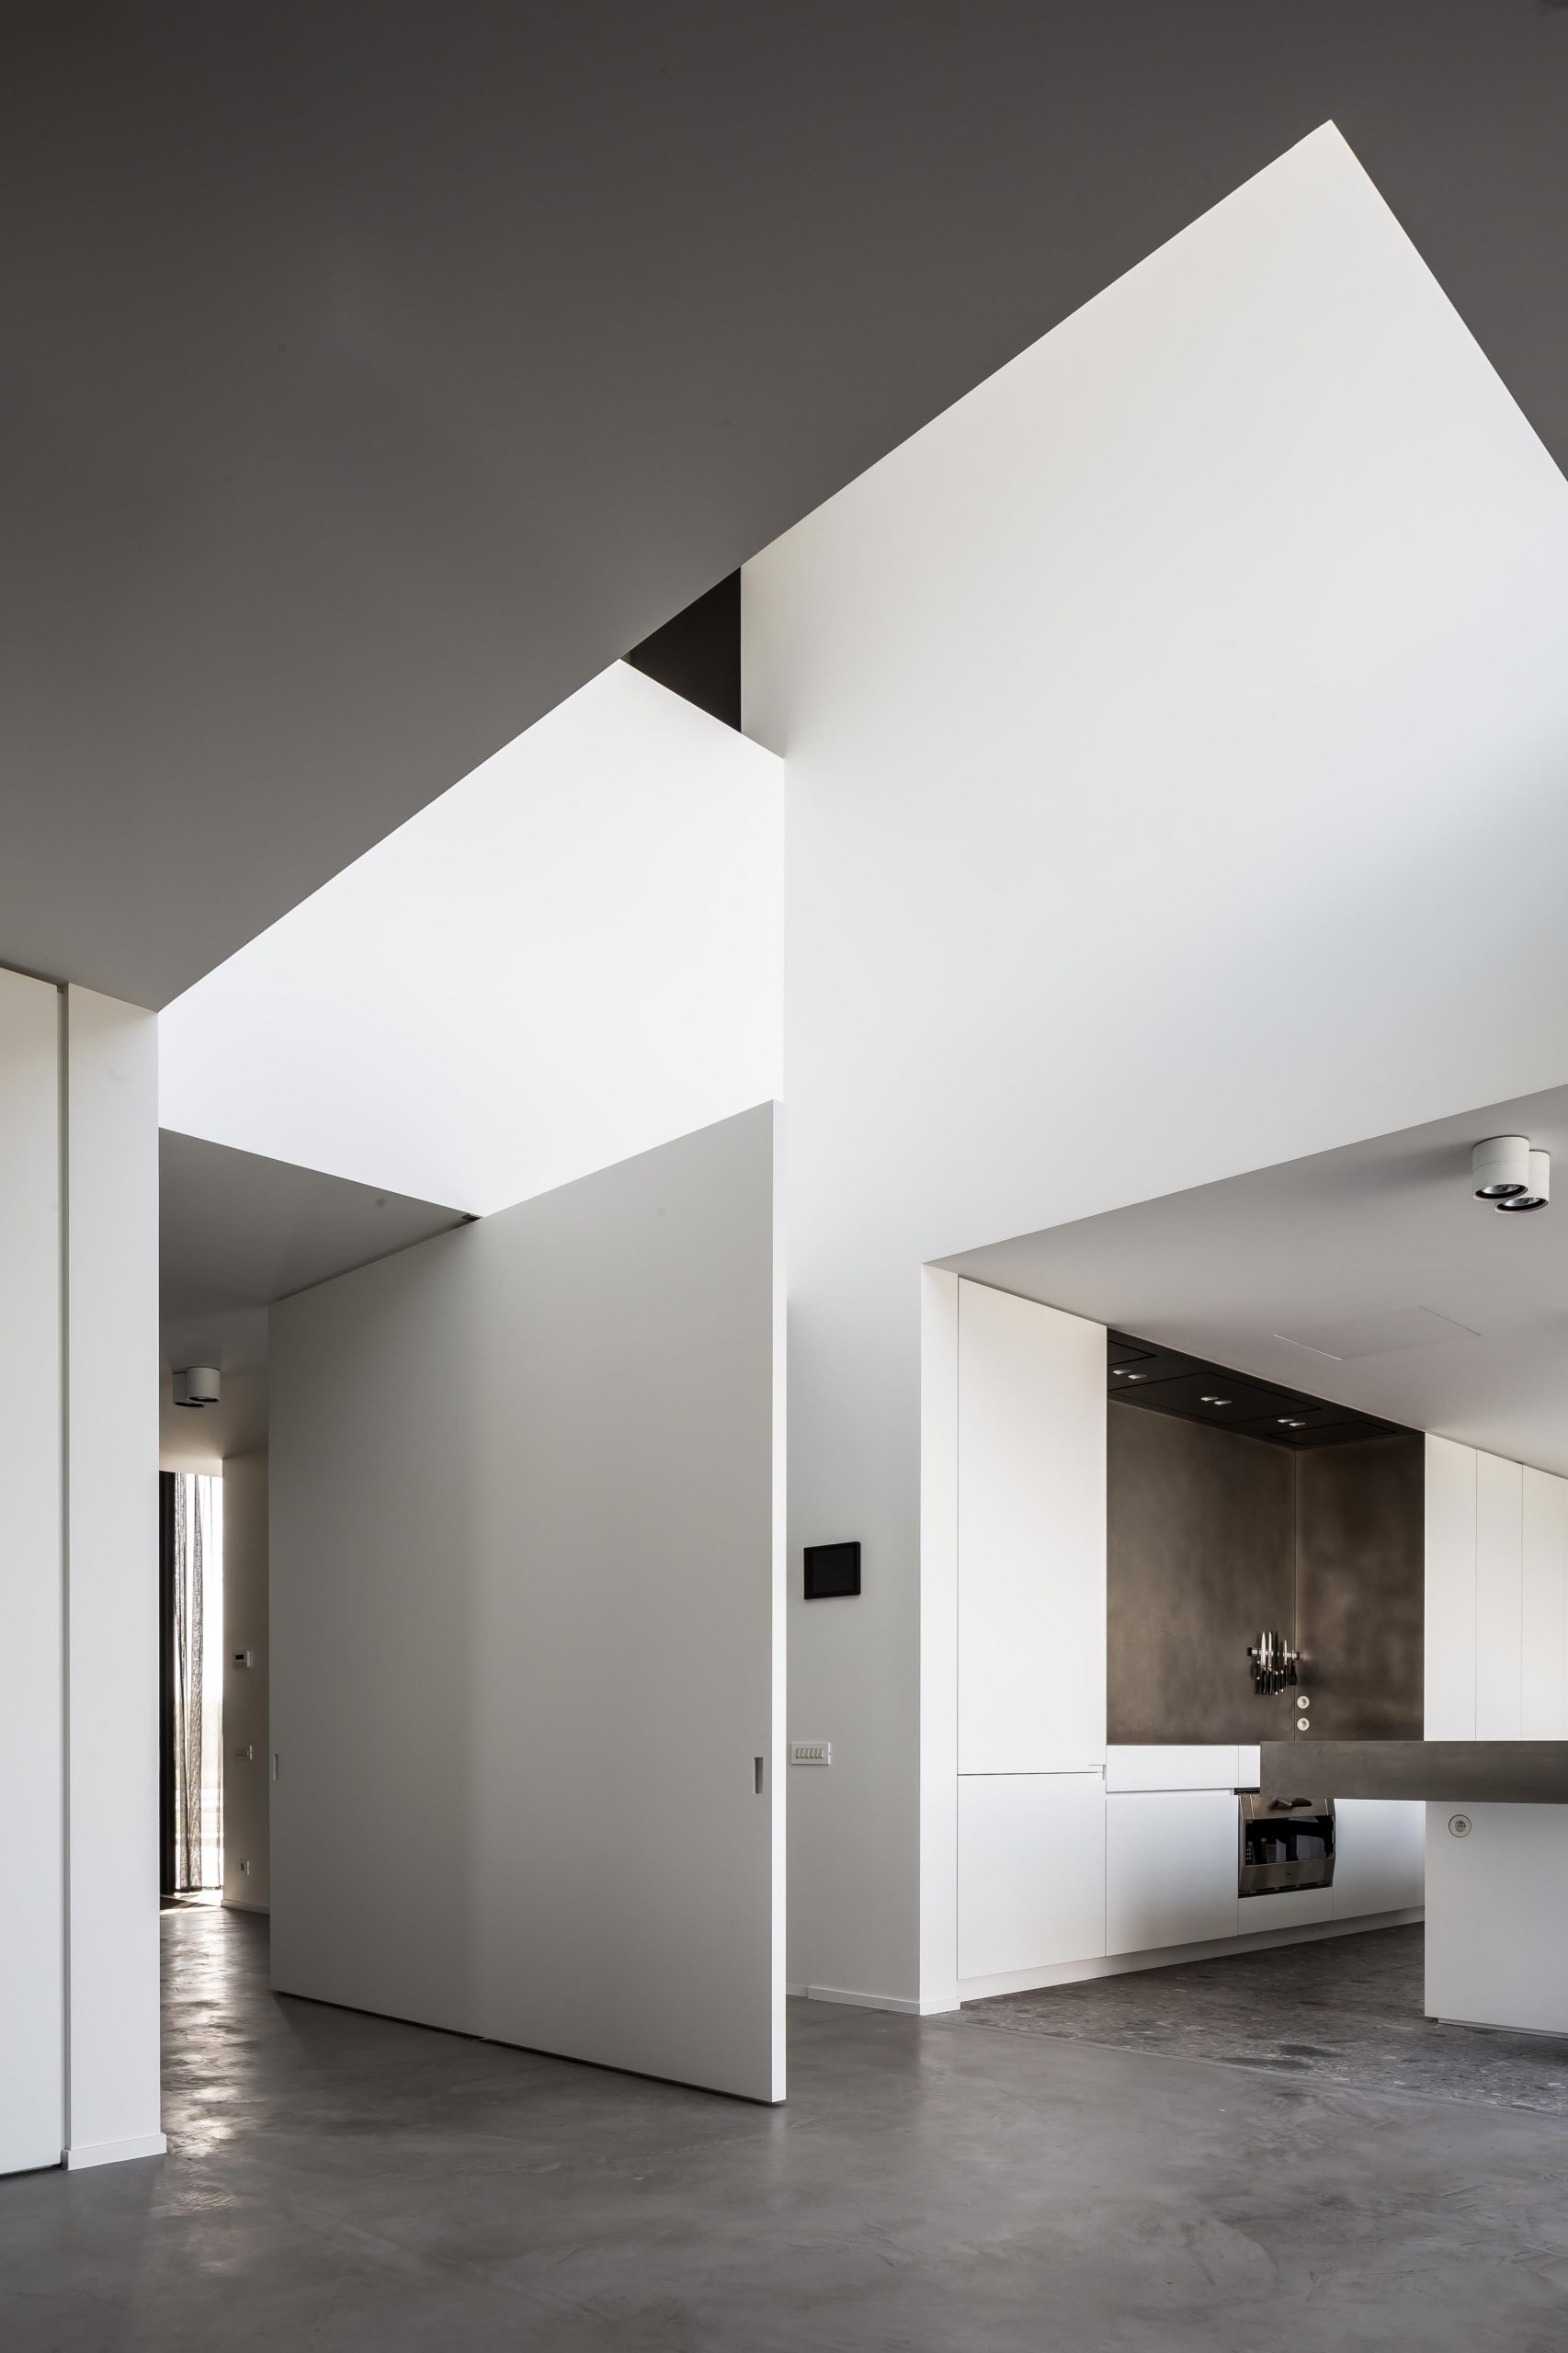 pivoting-oversized-door-in-white-with-middle-placement-fritsjurgens-pivot-hinges-inside-scaled.jpg